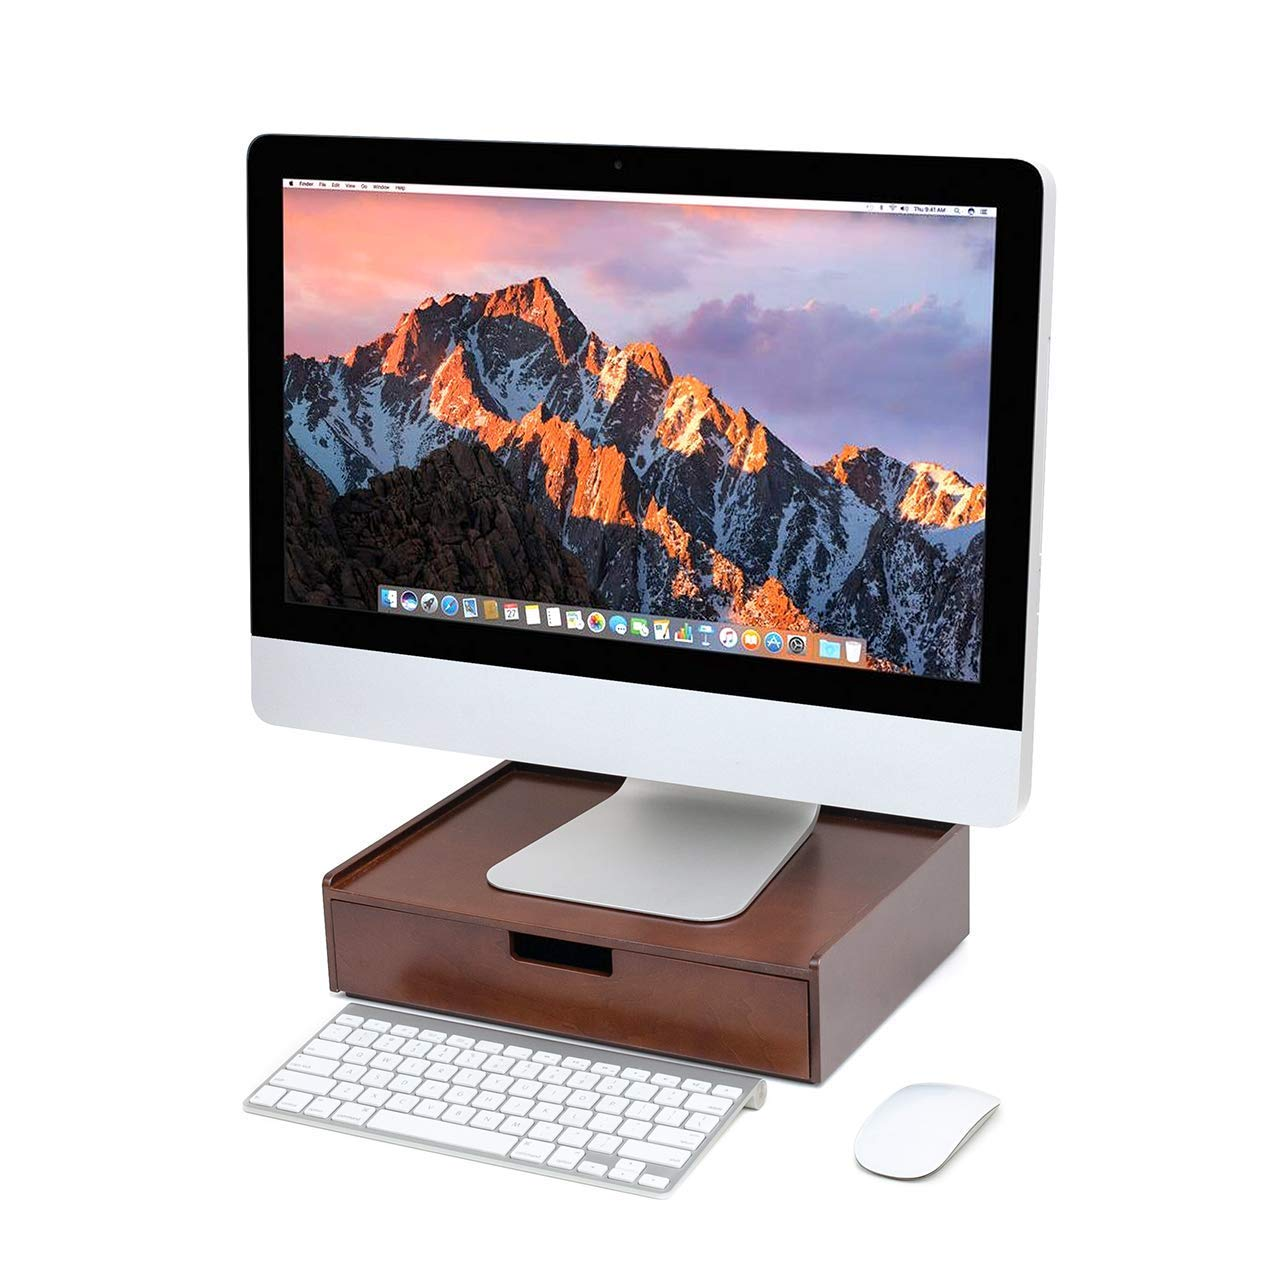 Wood Drawer Large, Monitor Stand & Stackable Storage Solution for Office Products pens, Pencils, Scissors, notepads, Business Cards and More